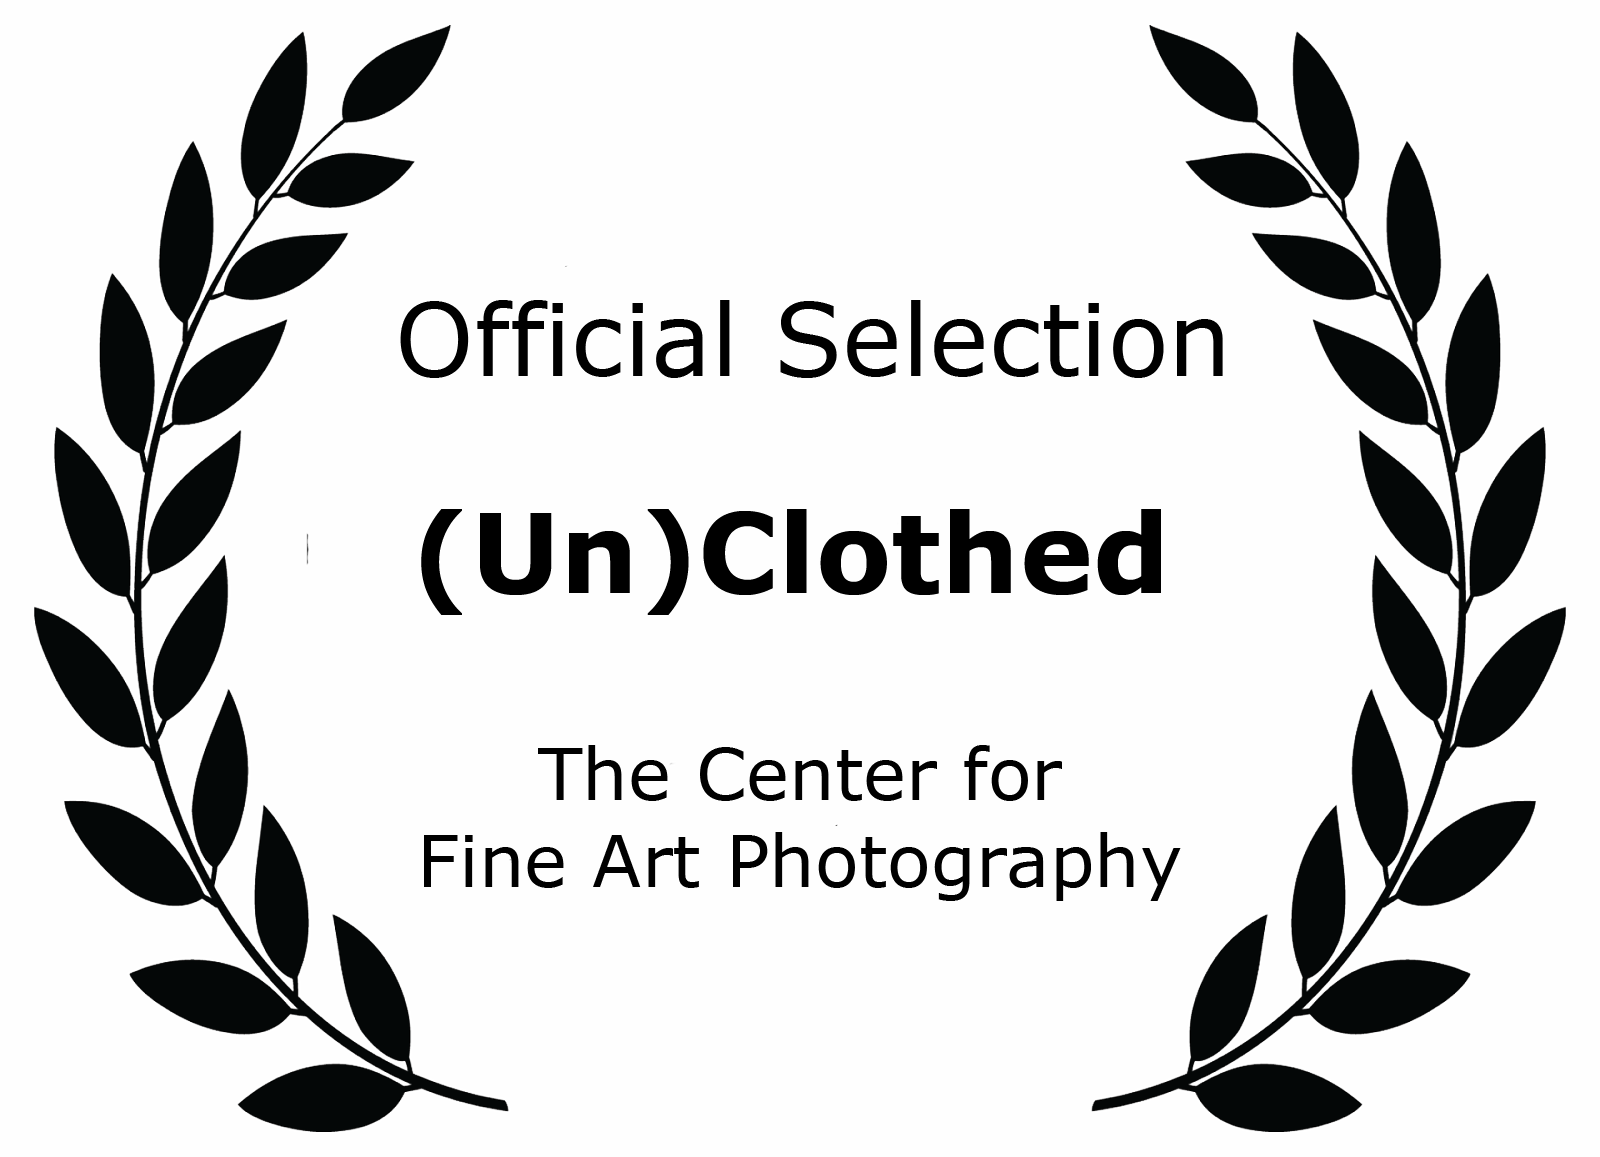 Official Selection (Un)Clothed – The Center for Fine Art Photography